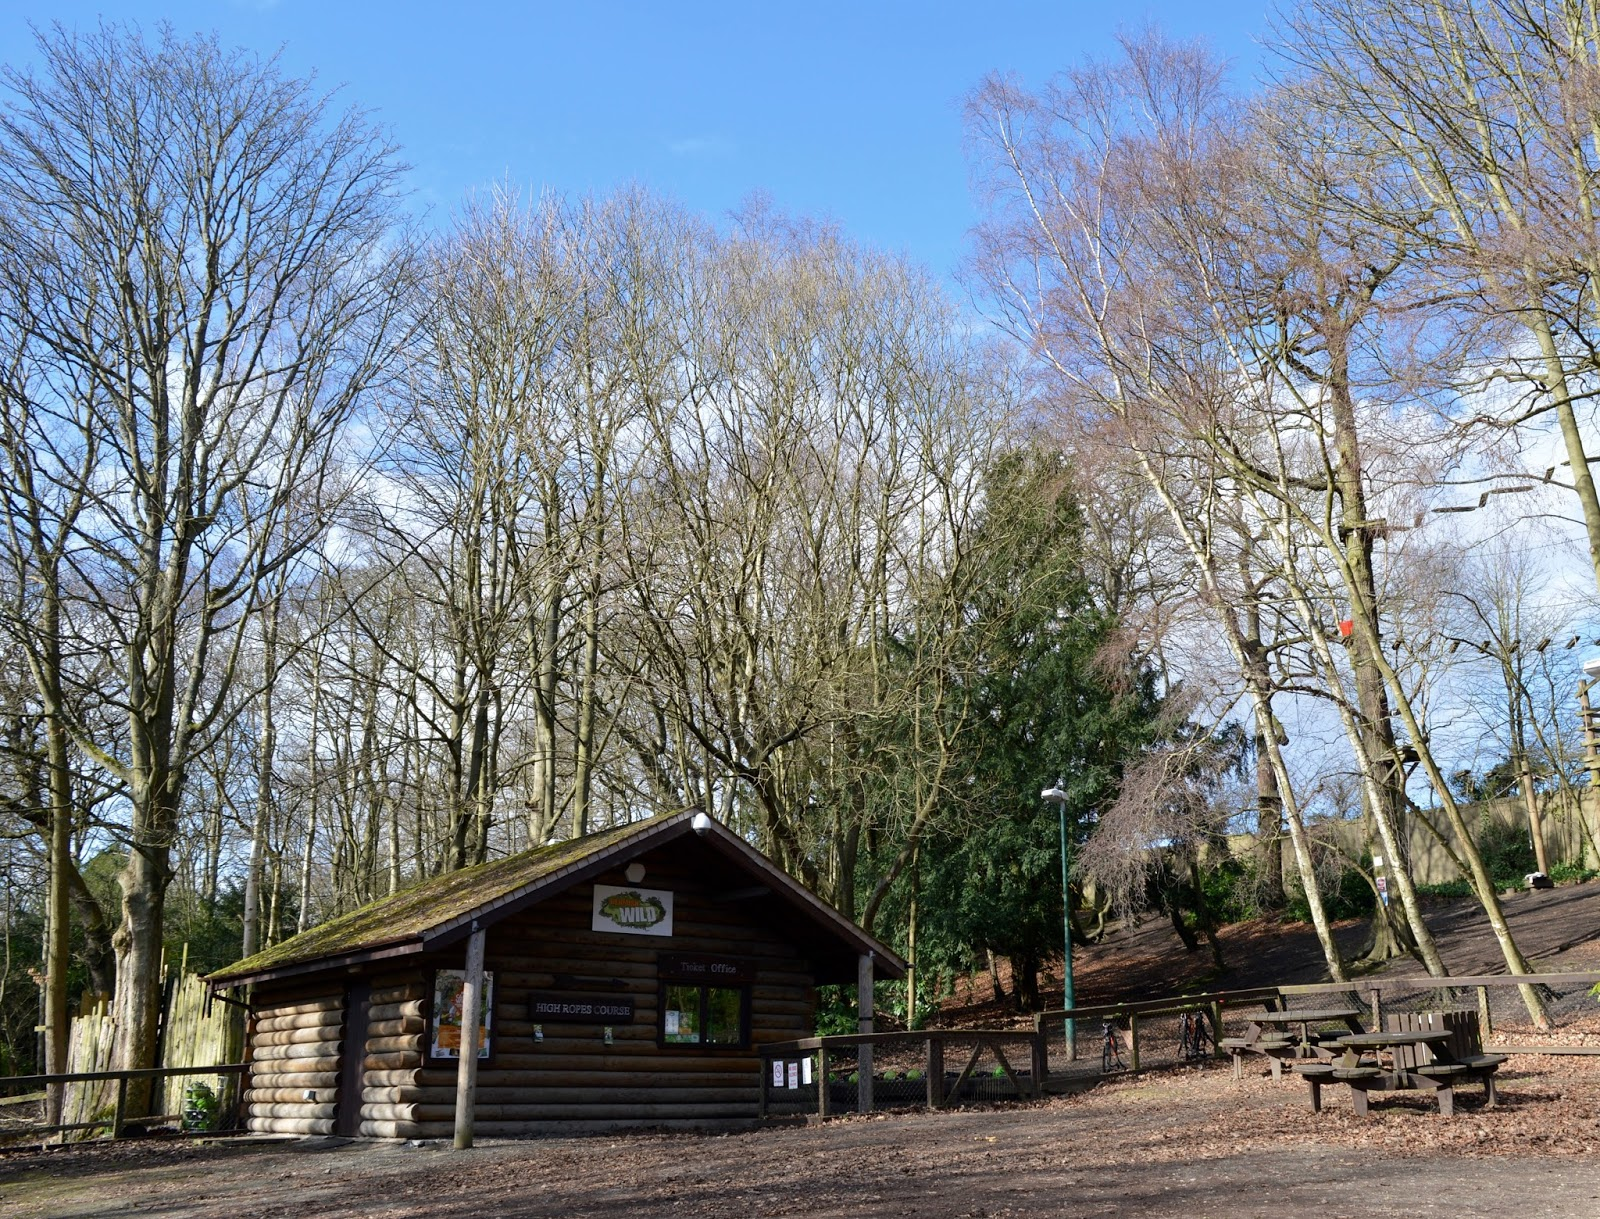 Beamish Wild | School Holiday Club & Activities in County Durham | North East England - reception